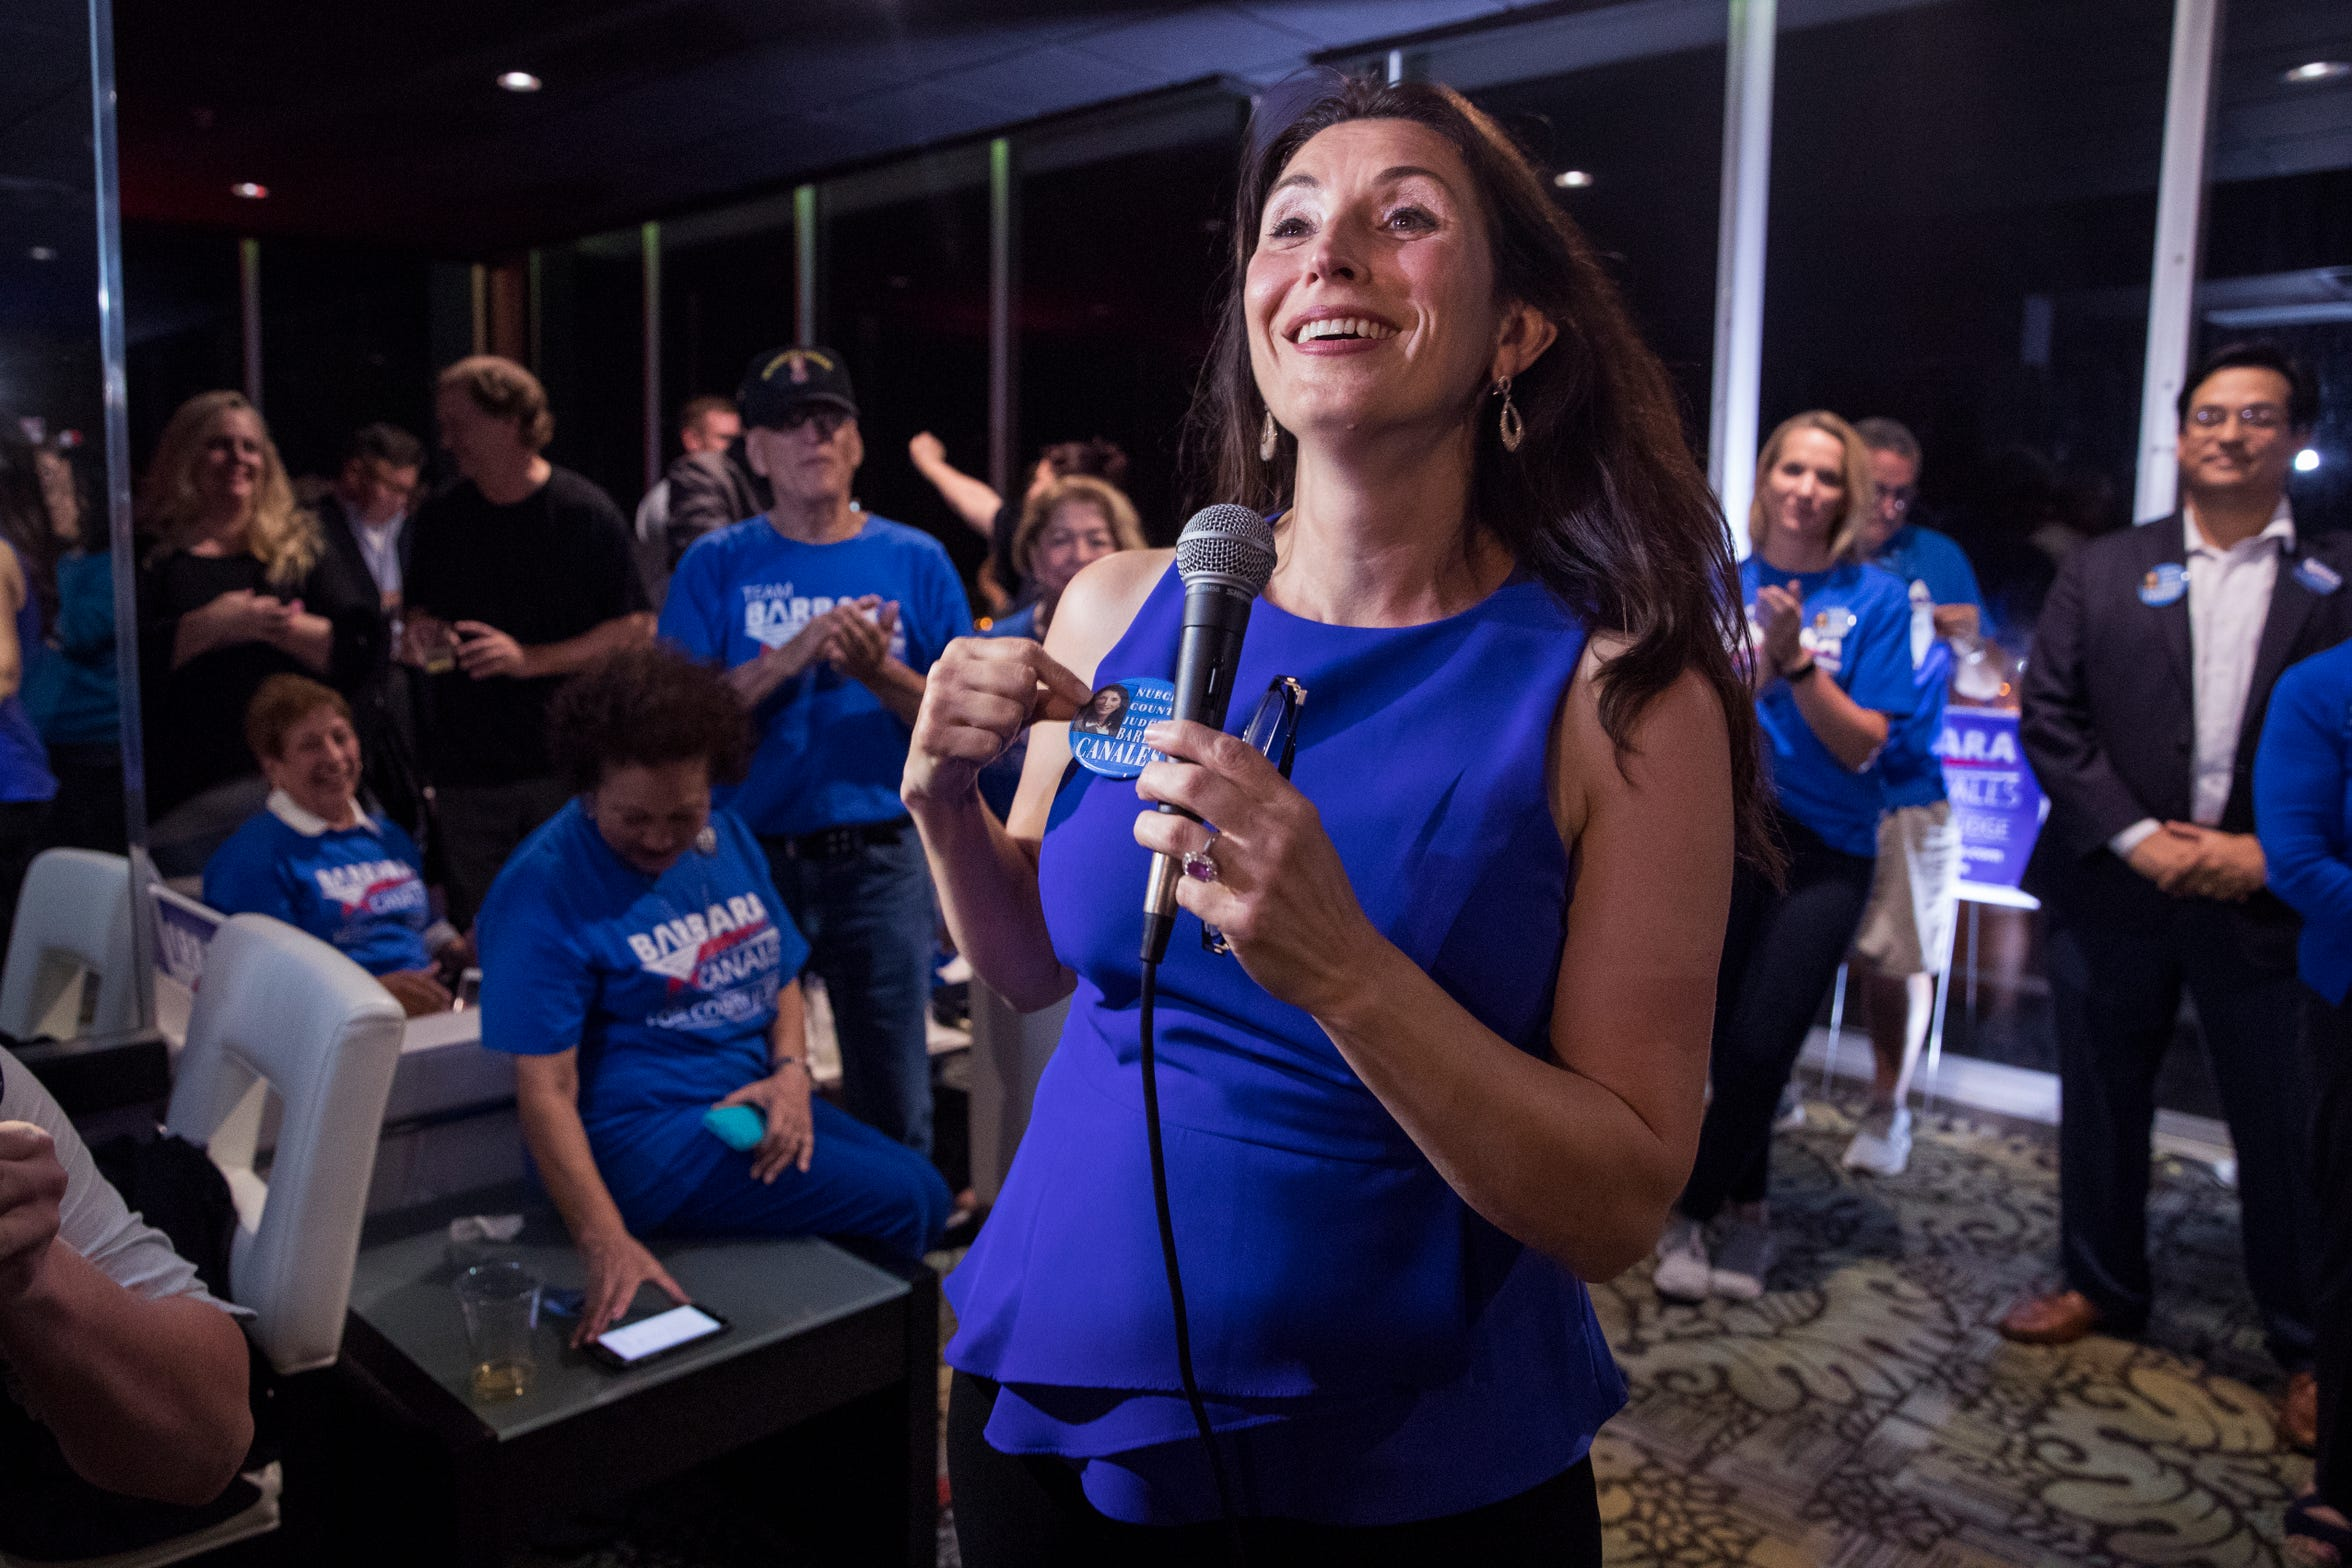 Nueces County Judge-elect Barbara Canales gives her acceptance speech during her watch party at the Best Western on Tuesday, November 6, 2018.